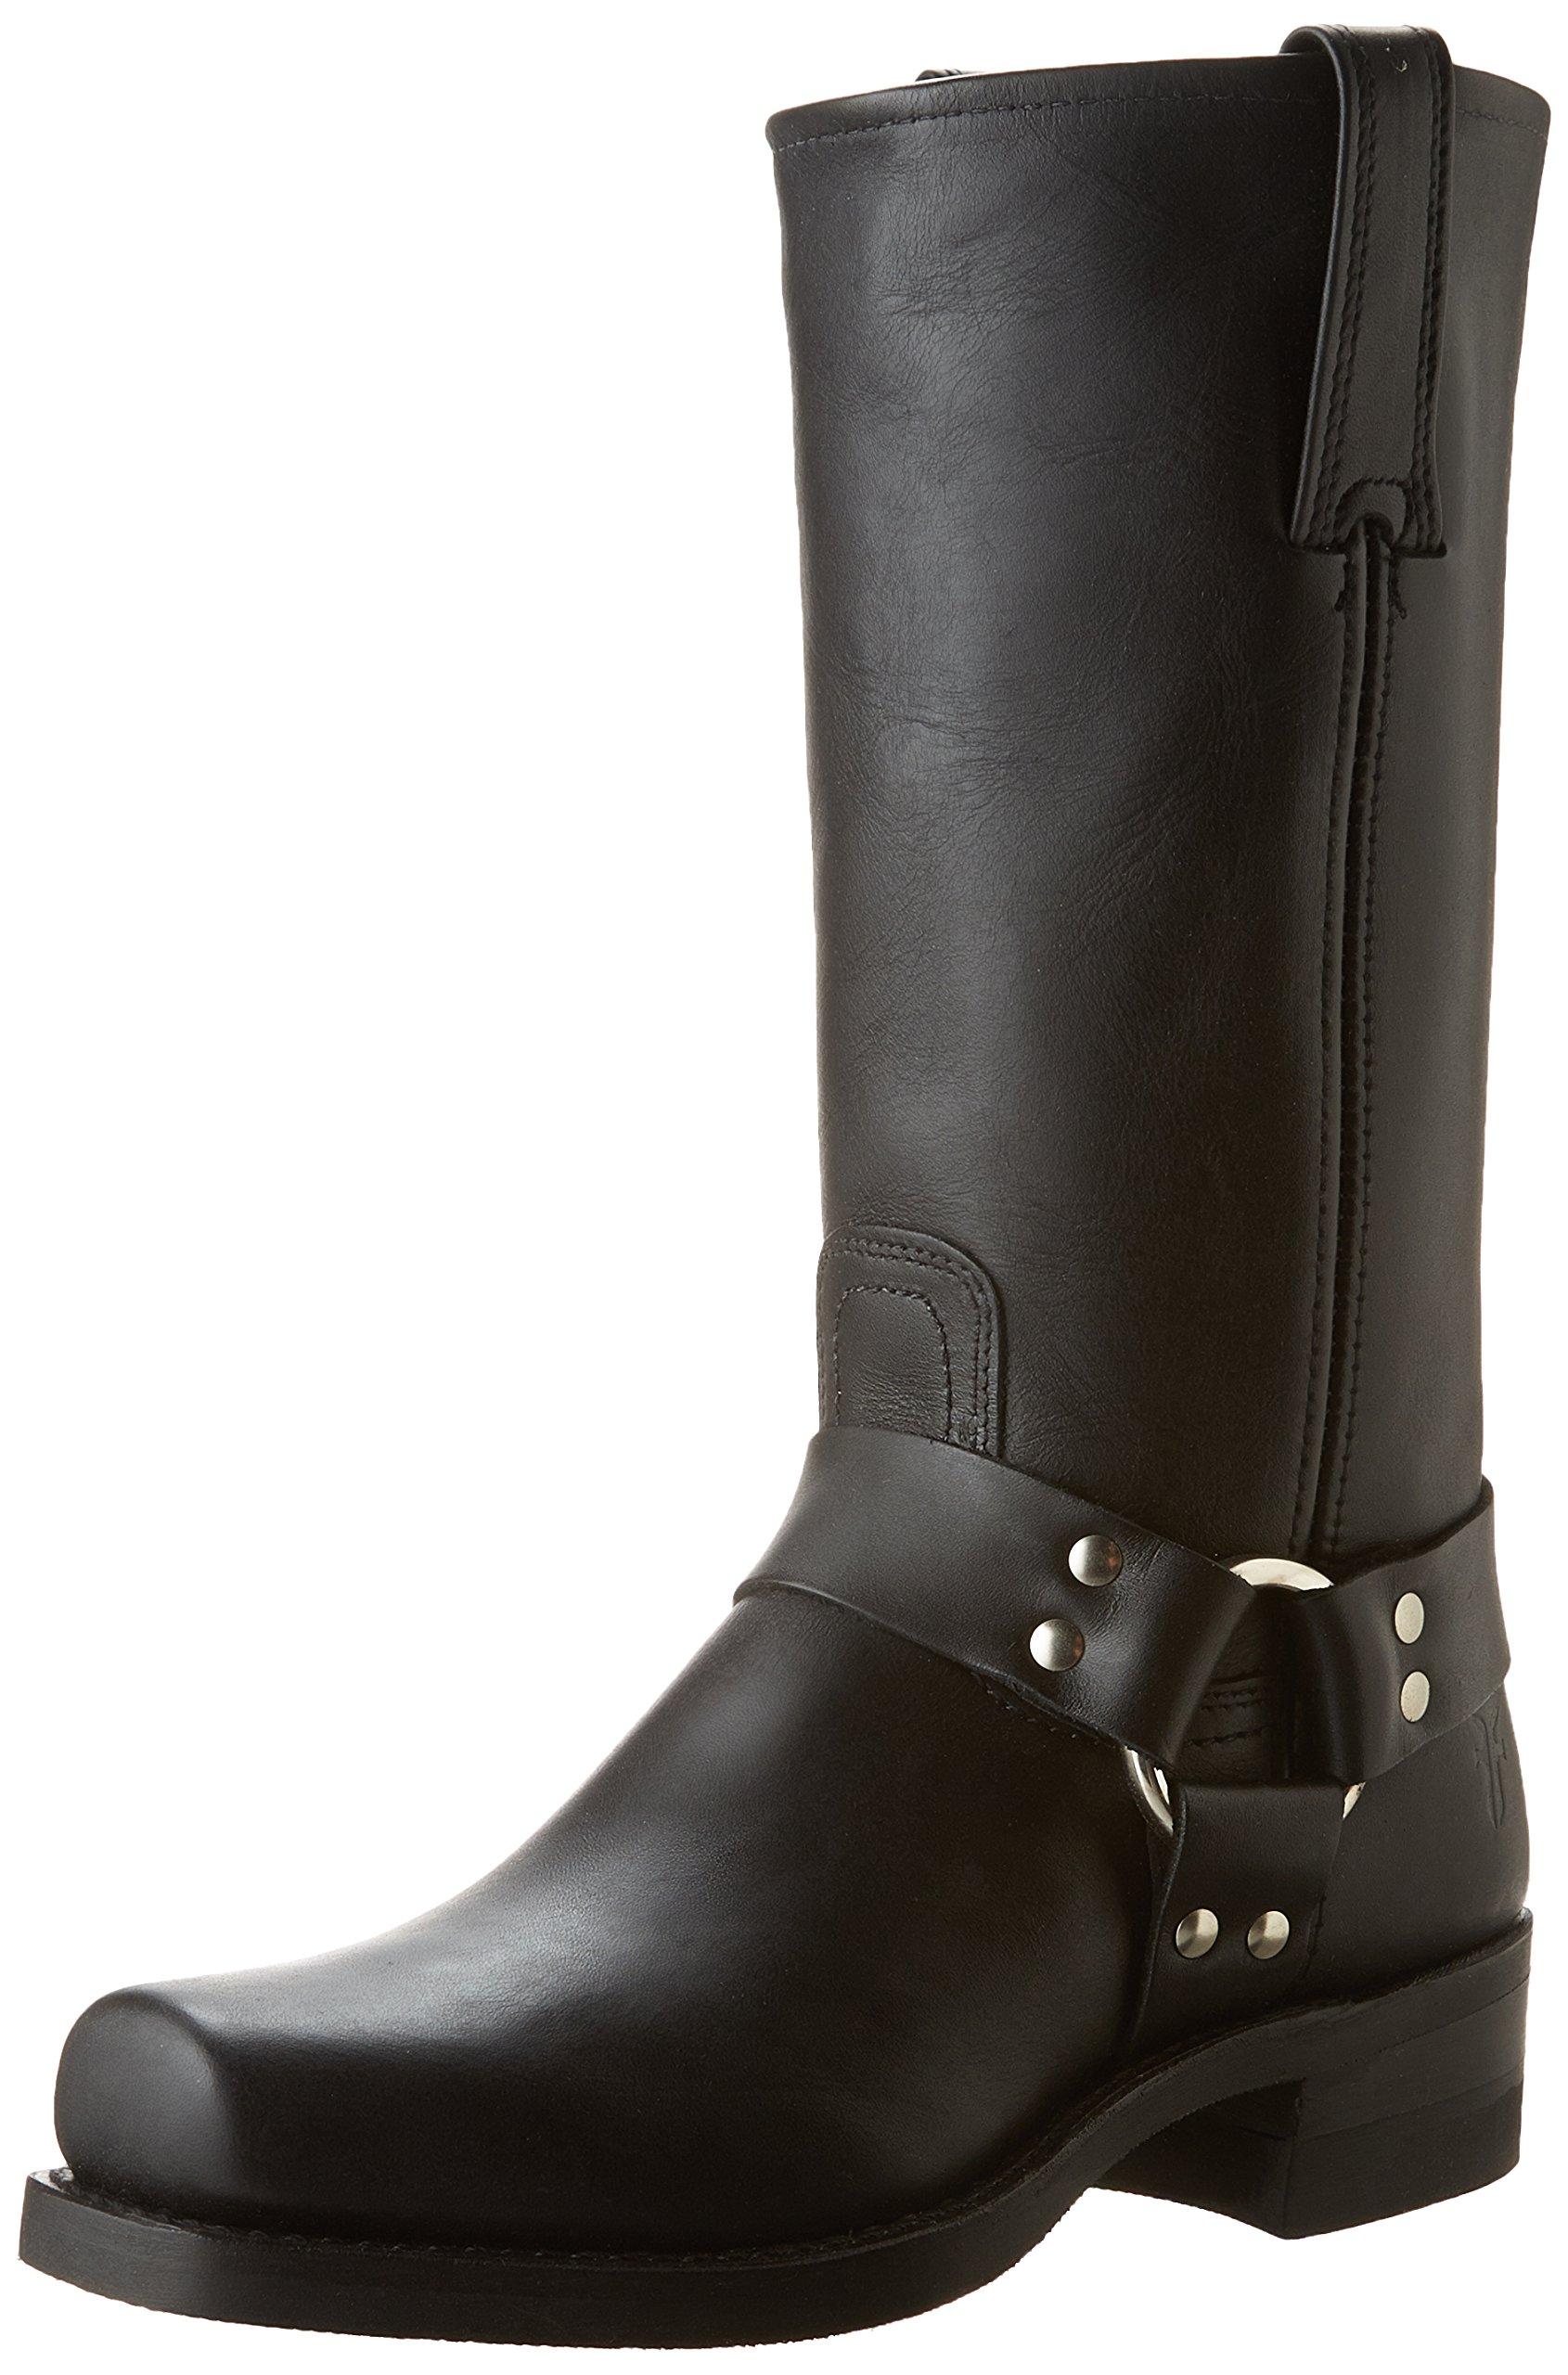 FRYE Men's Harness 12R Boot,Black,7 M US